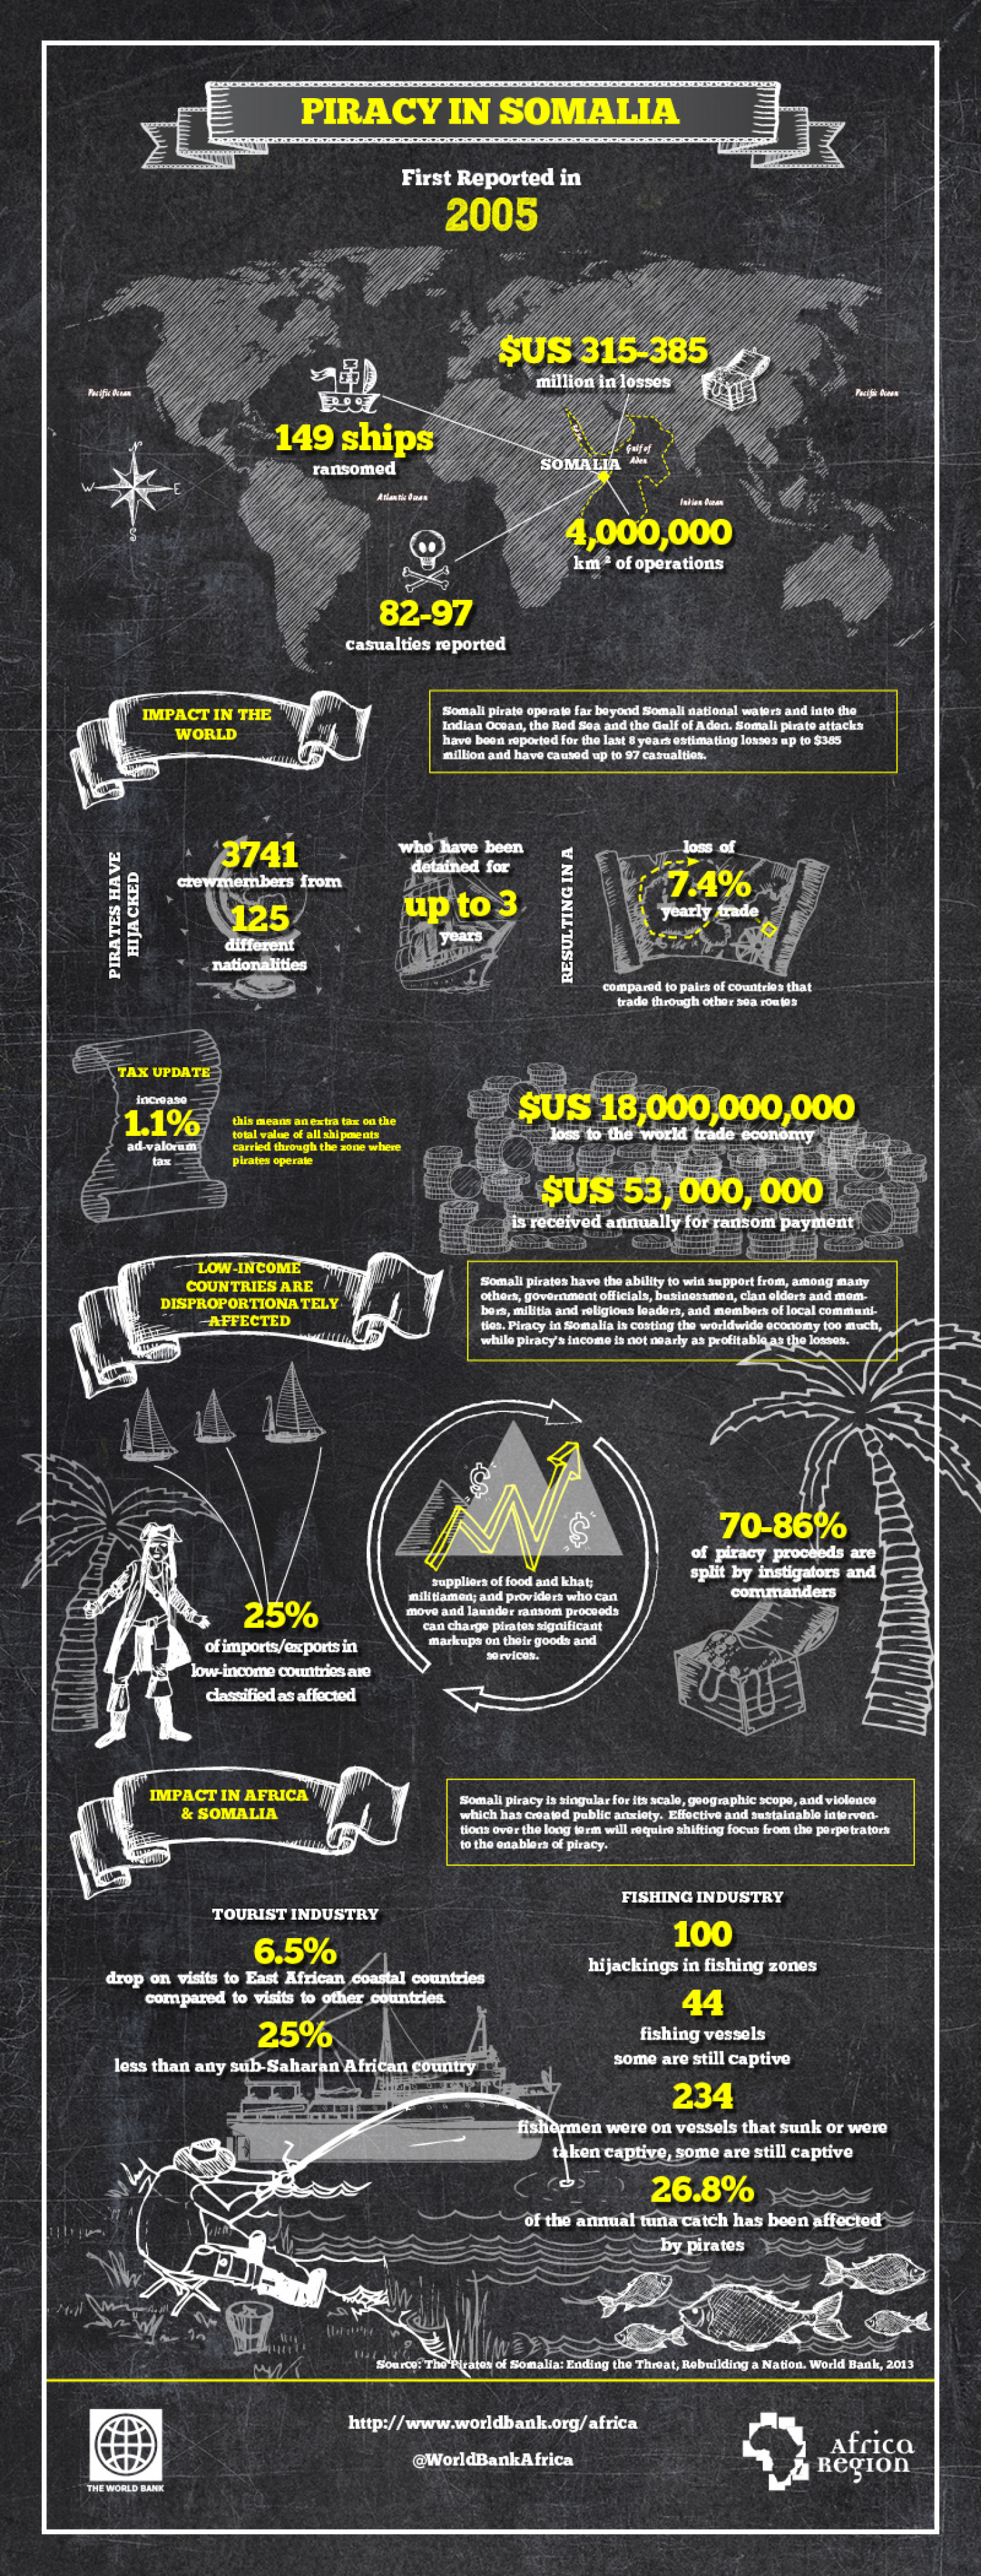 Piracy in Somalia Infographic